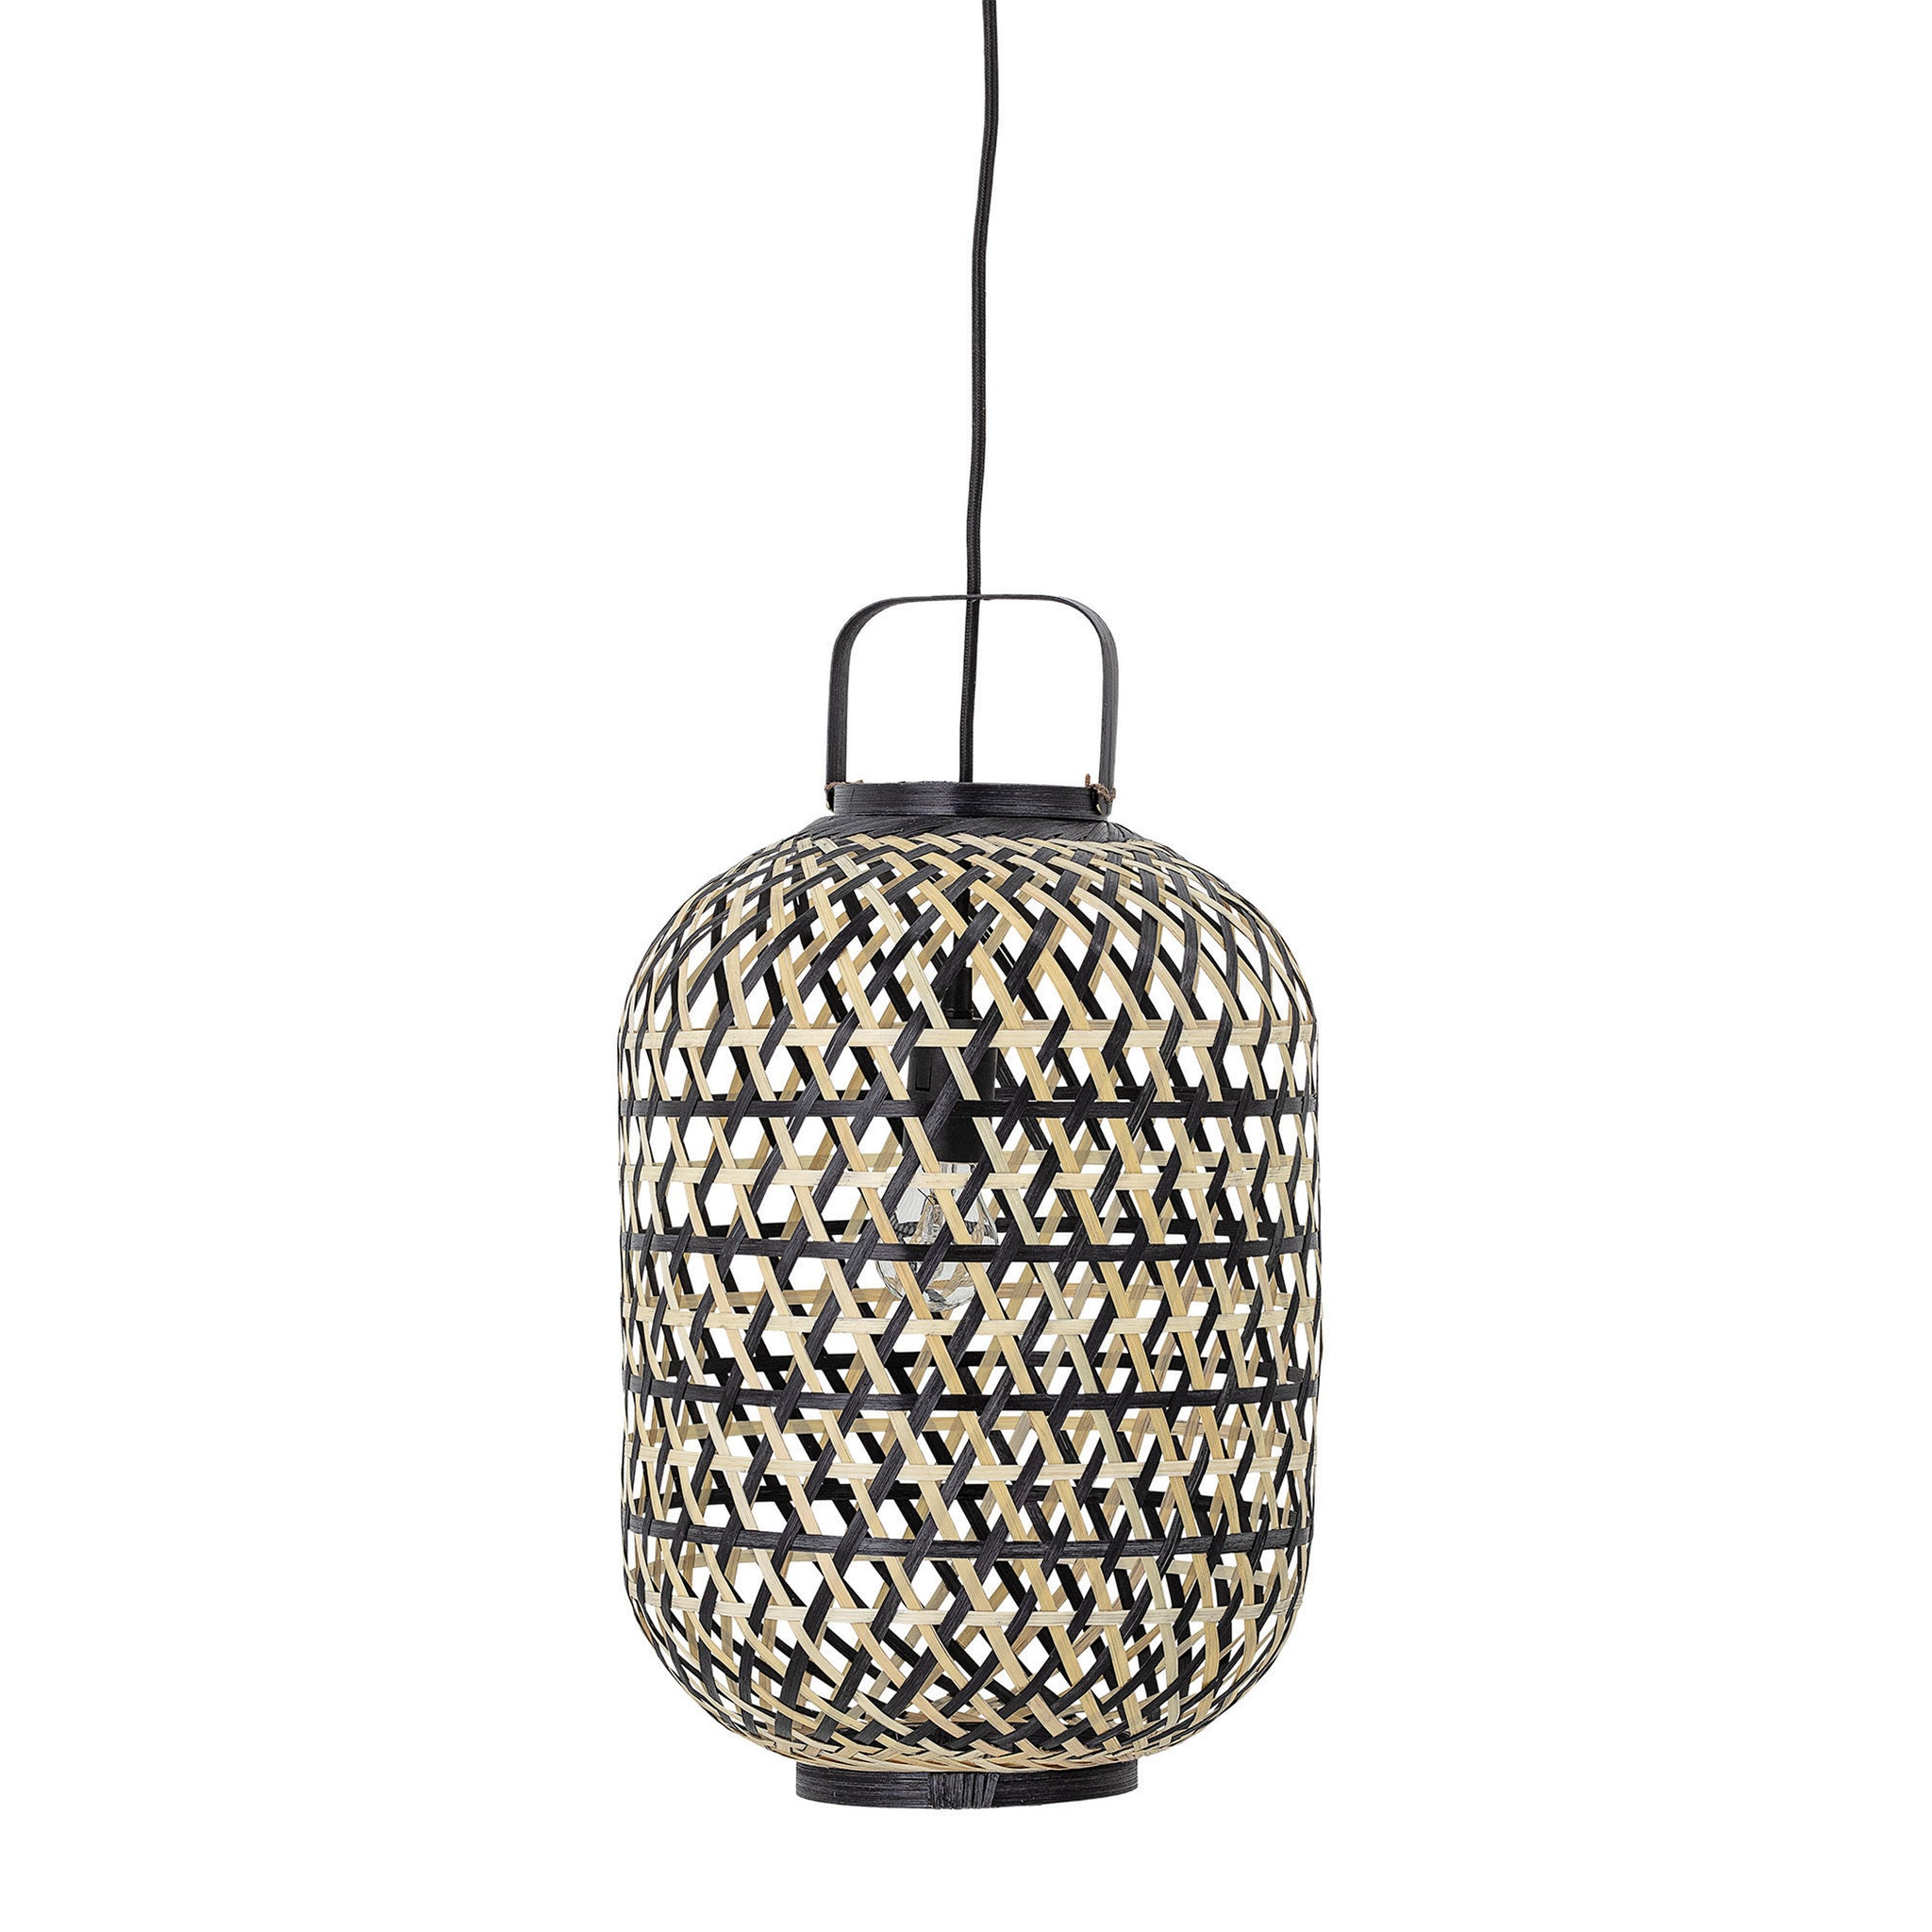 Lantern Shaped Handwoven Bamboo Pendant Light (Hardwire Only)